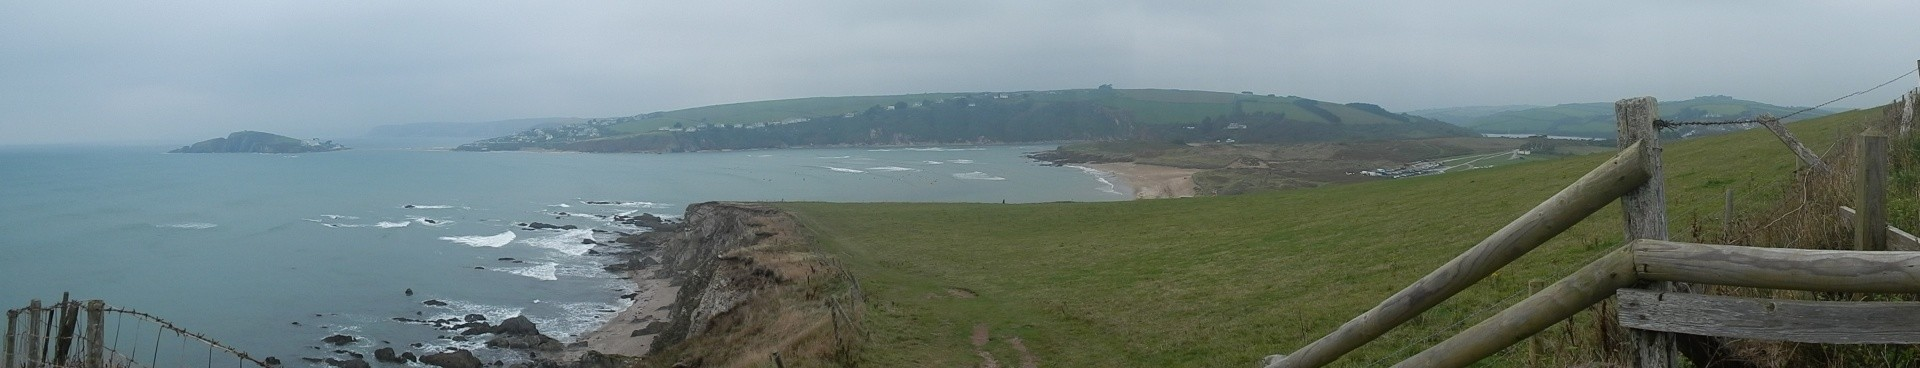 lukelaneprokopiou's photo of Bantham